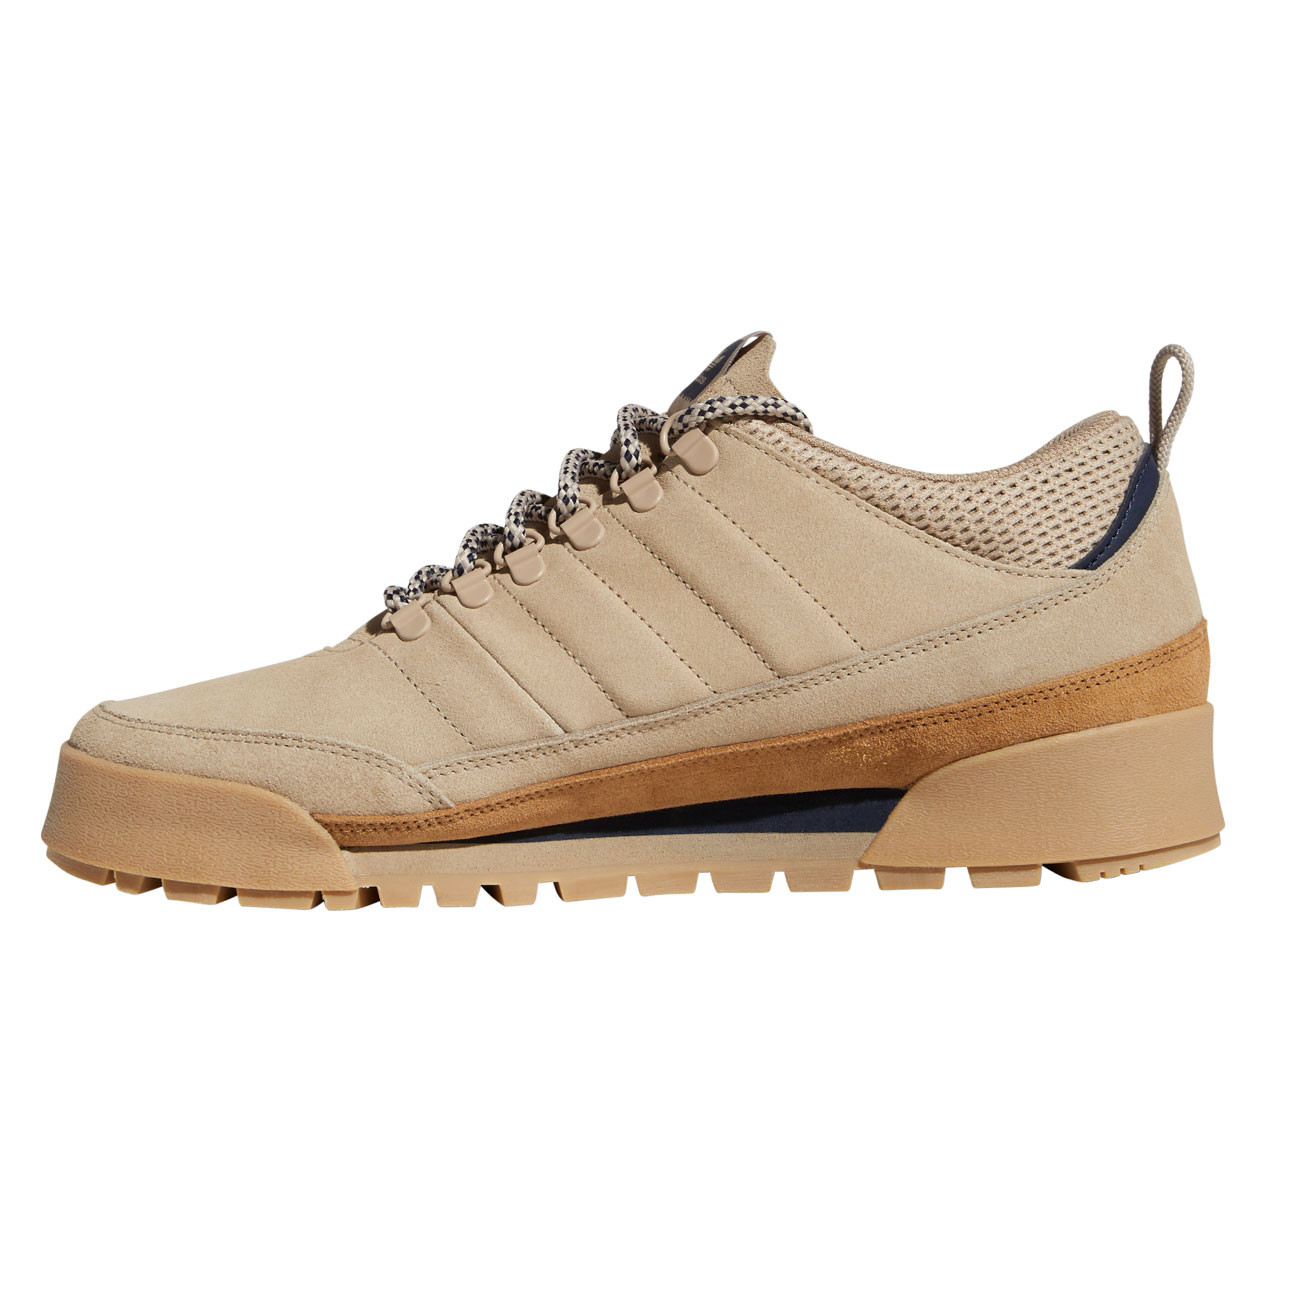 Winter shoes Adidas Jake Boot 2.0 Low